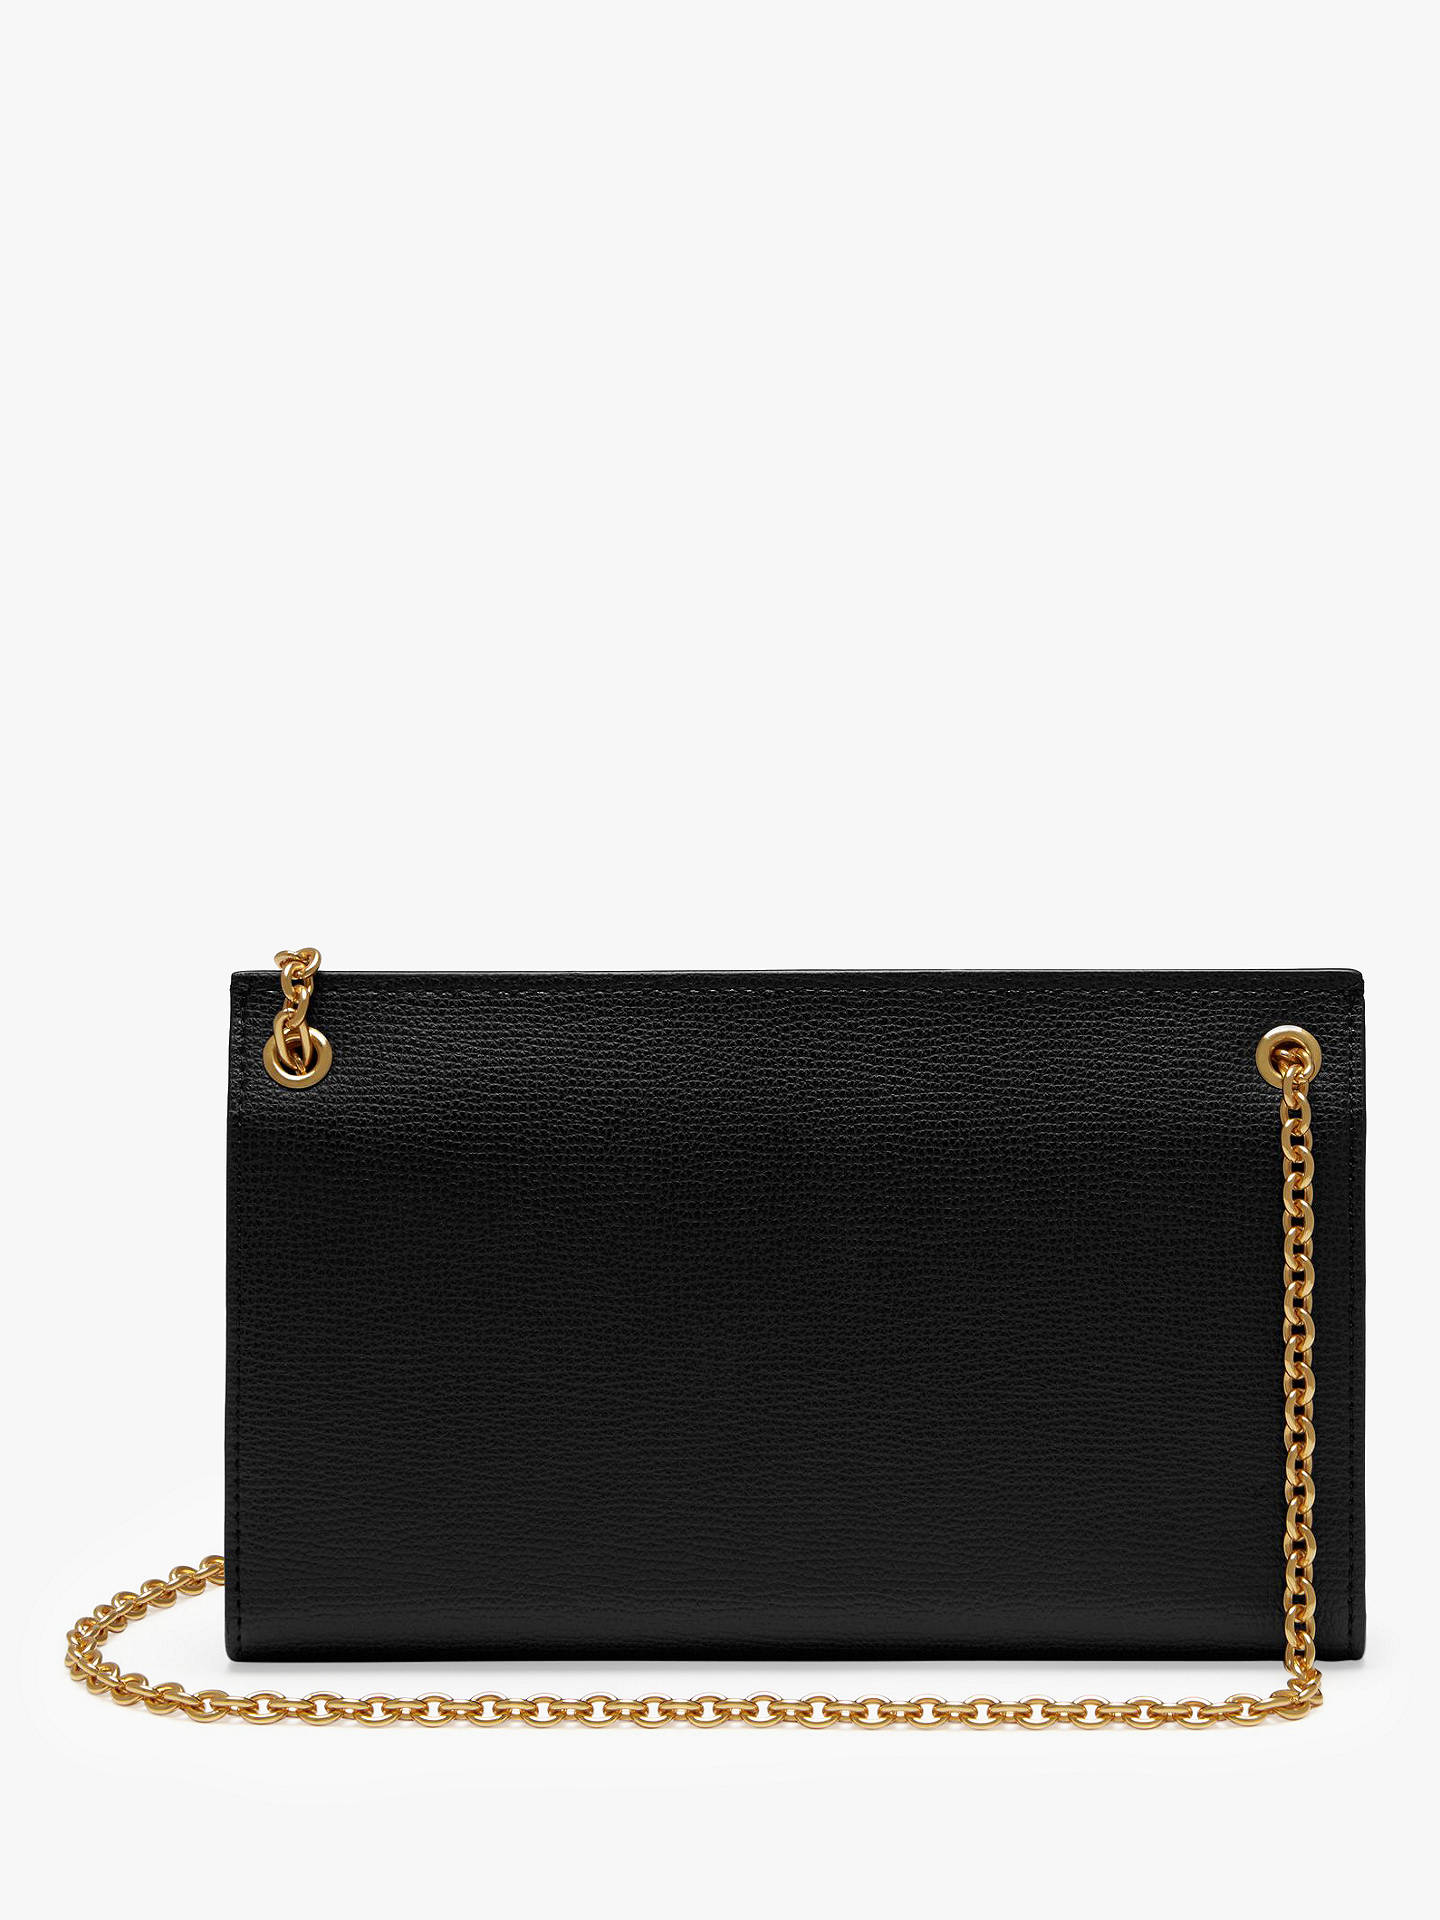 Mulberry Amberley Cross Grain Leather Clutch Bag at John Lewis ... e1edc2a866271